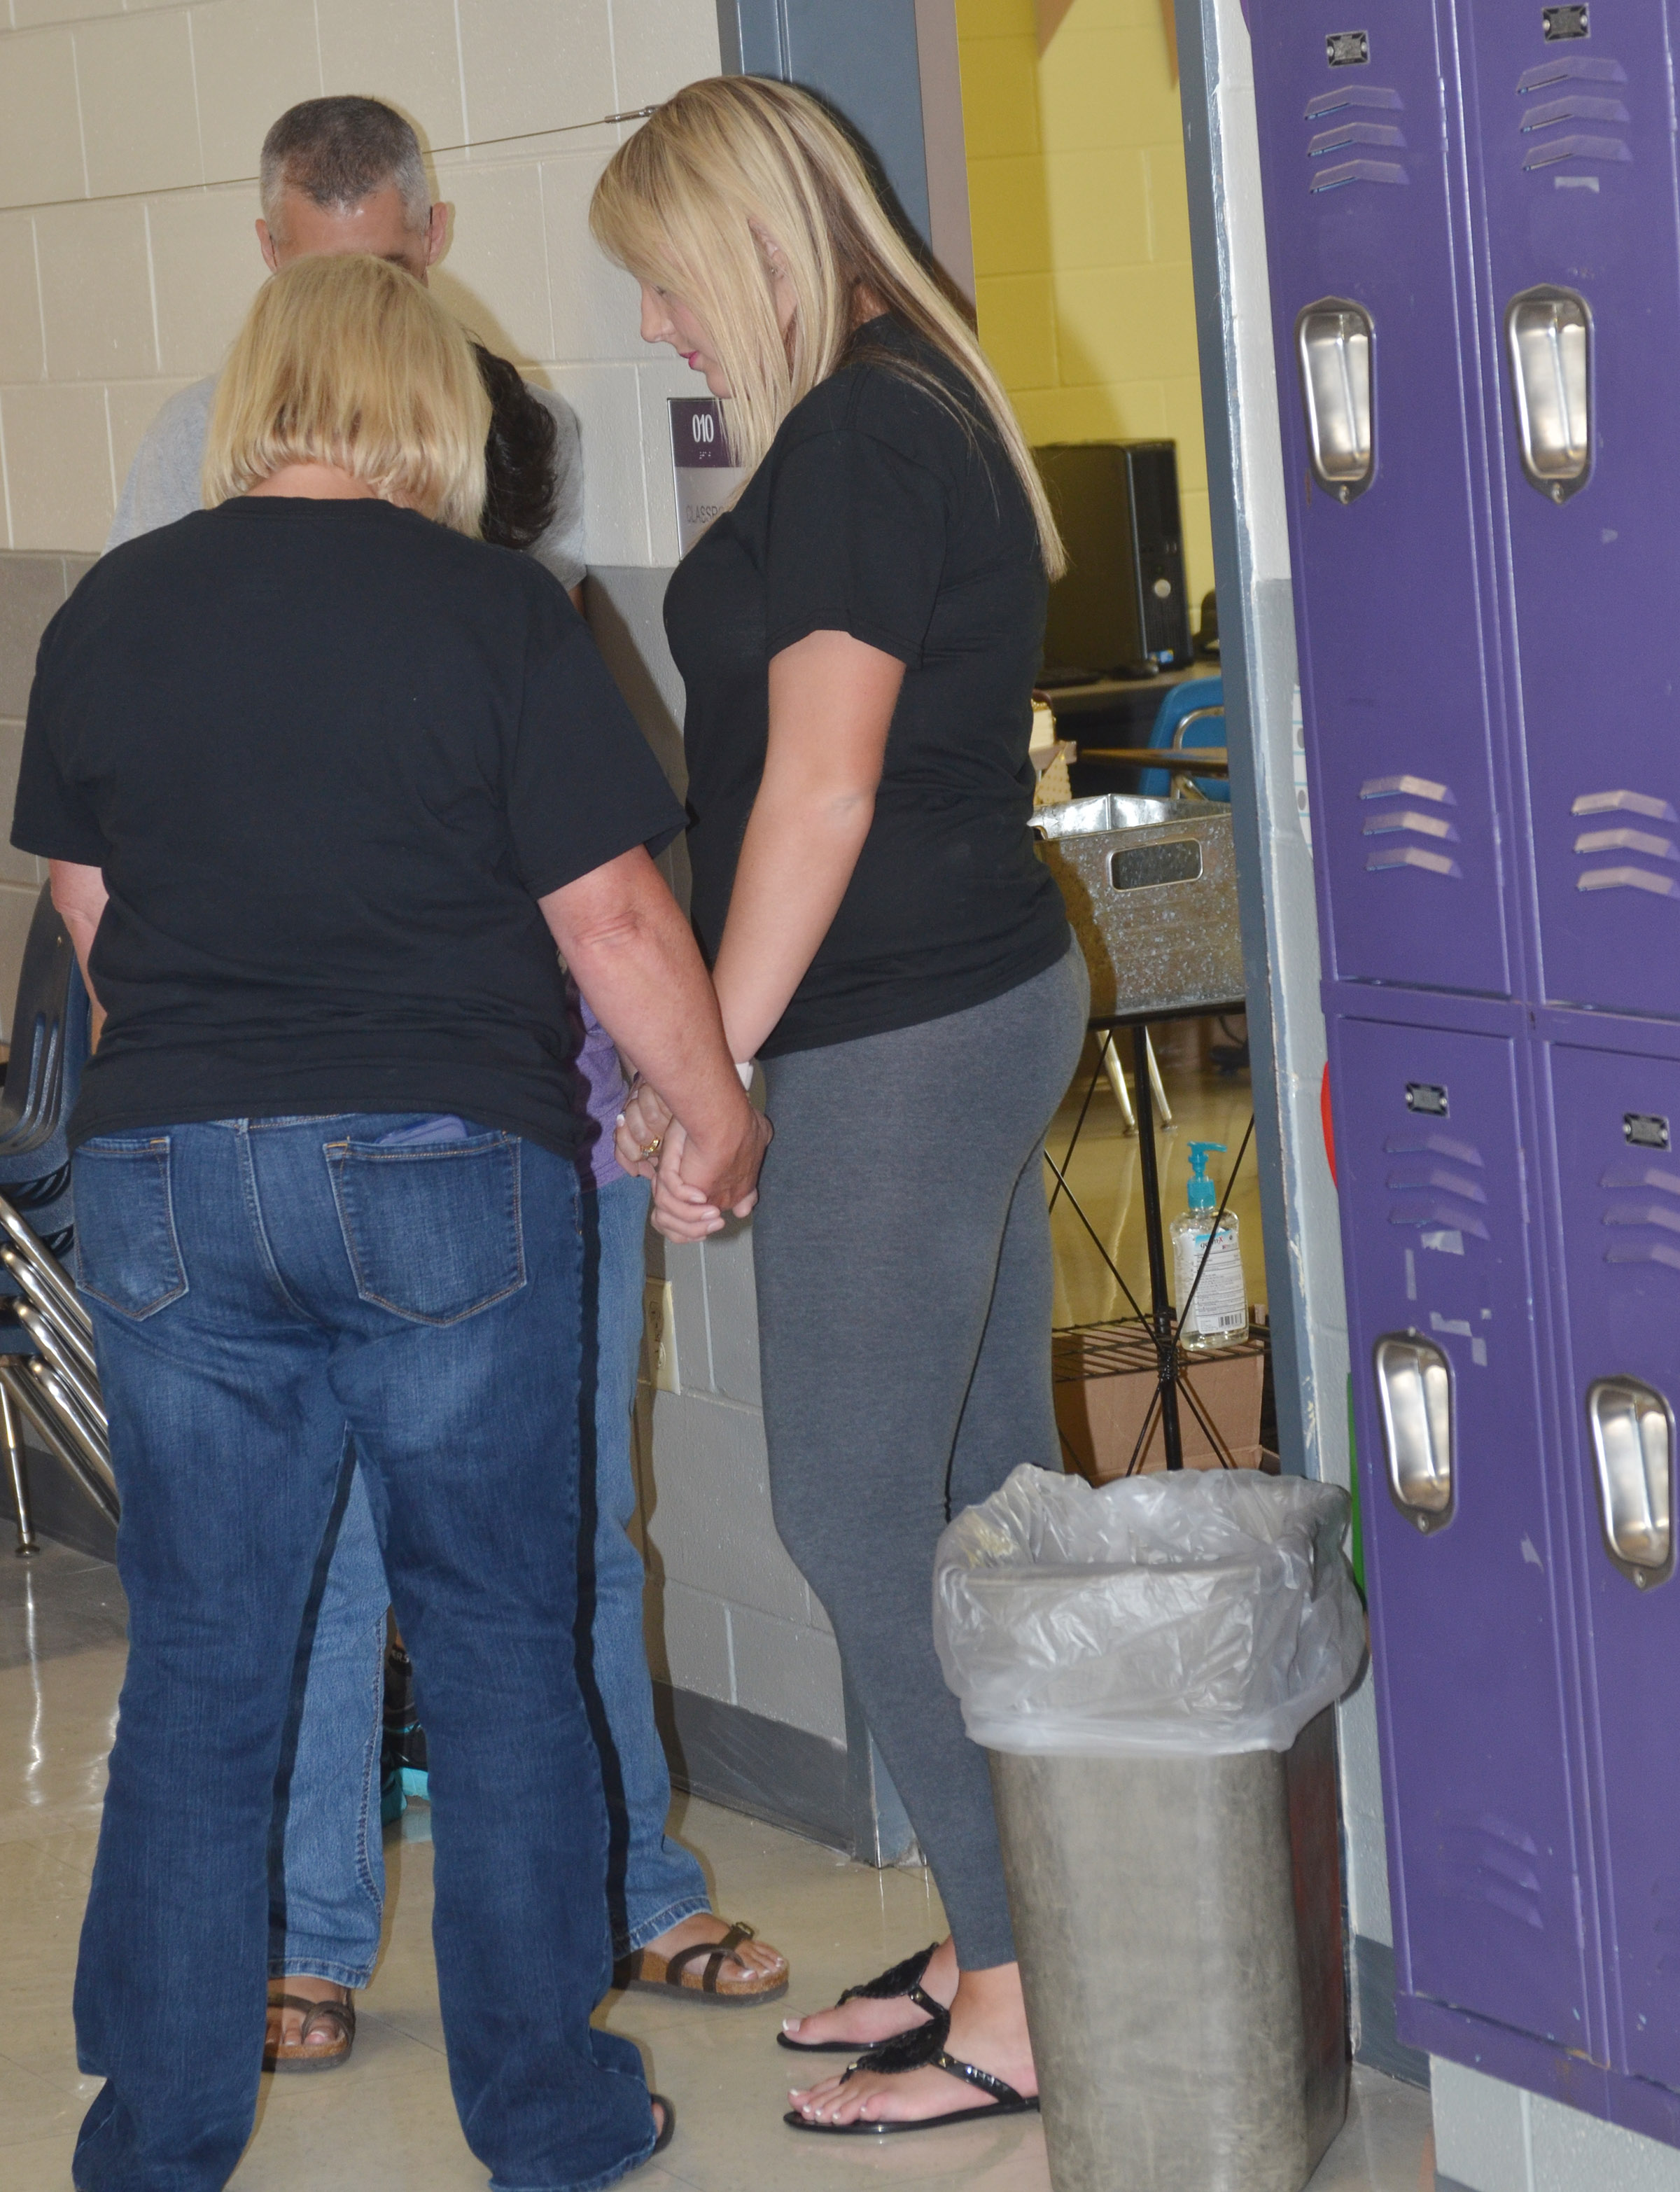 CIS staff members pray with CES third-grade teacher Keri Rowe, at right, who is beginning her first year as a teacher.